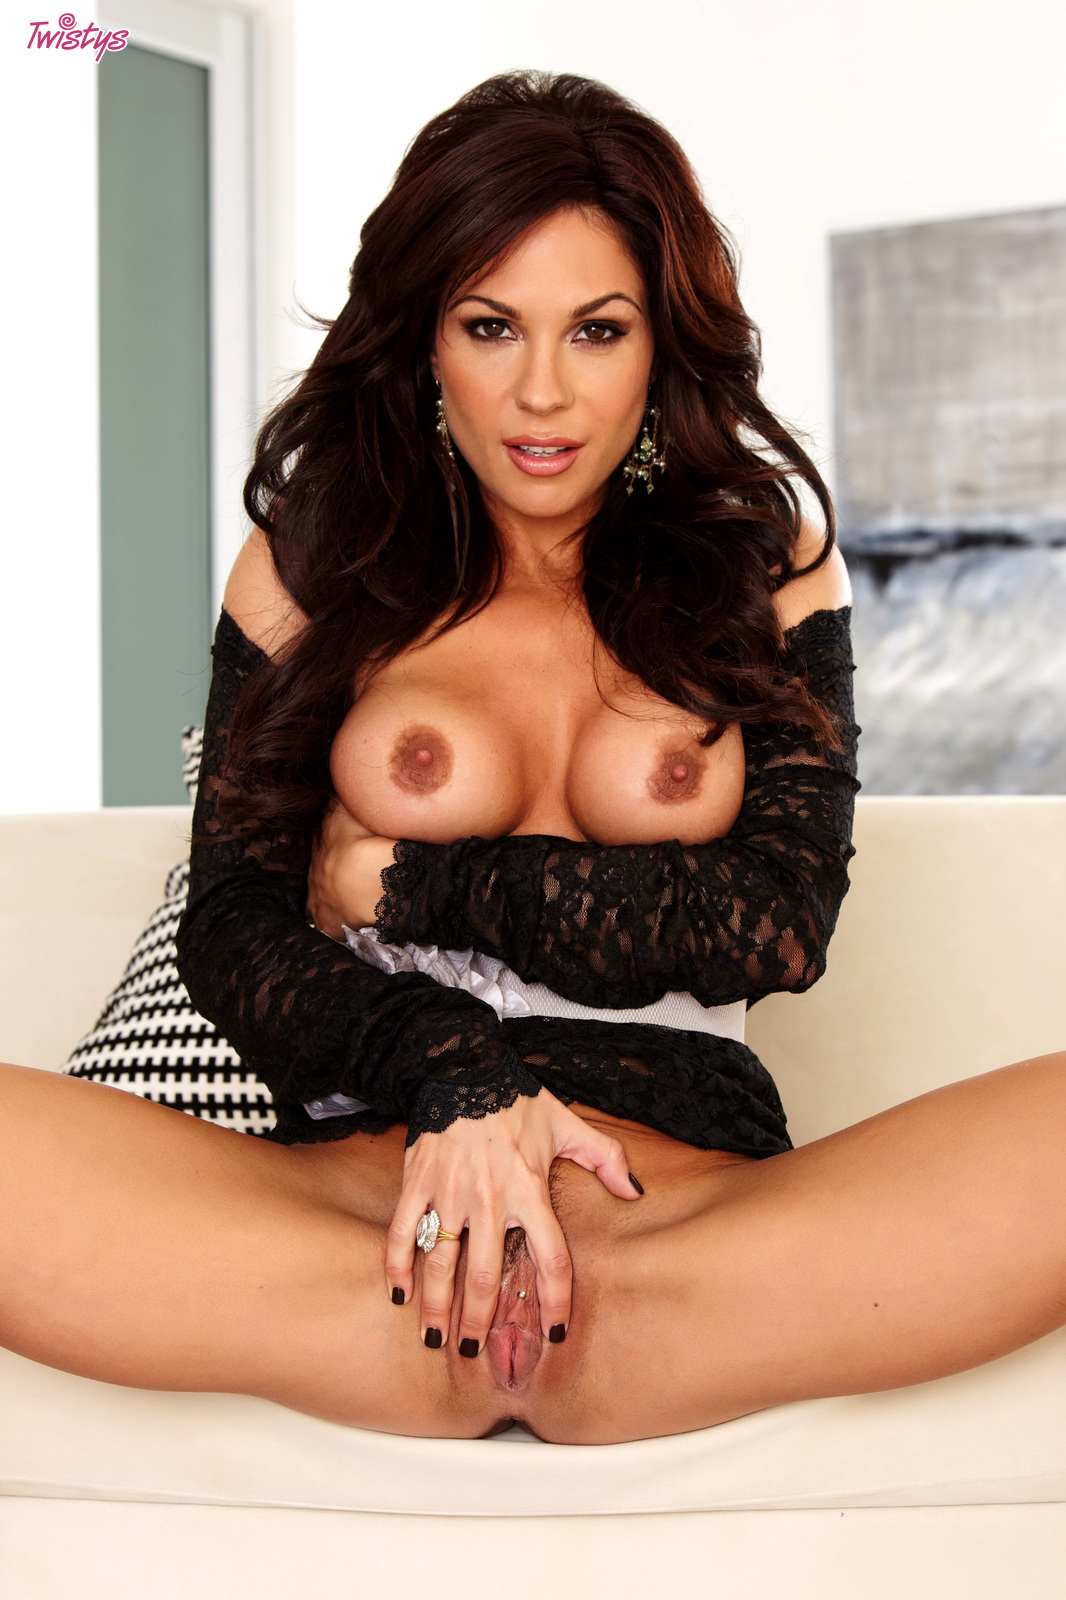 Kirsten Price Gallery > Sexy Beauties